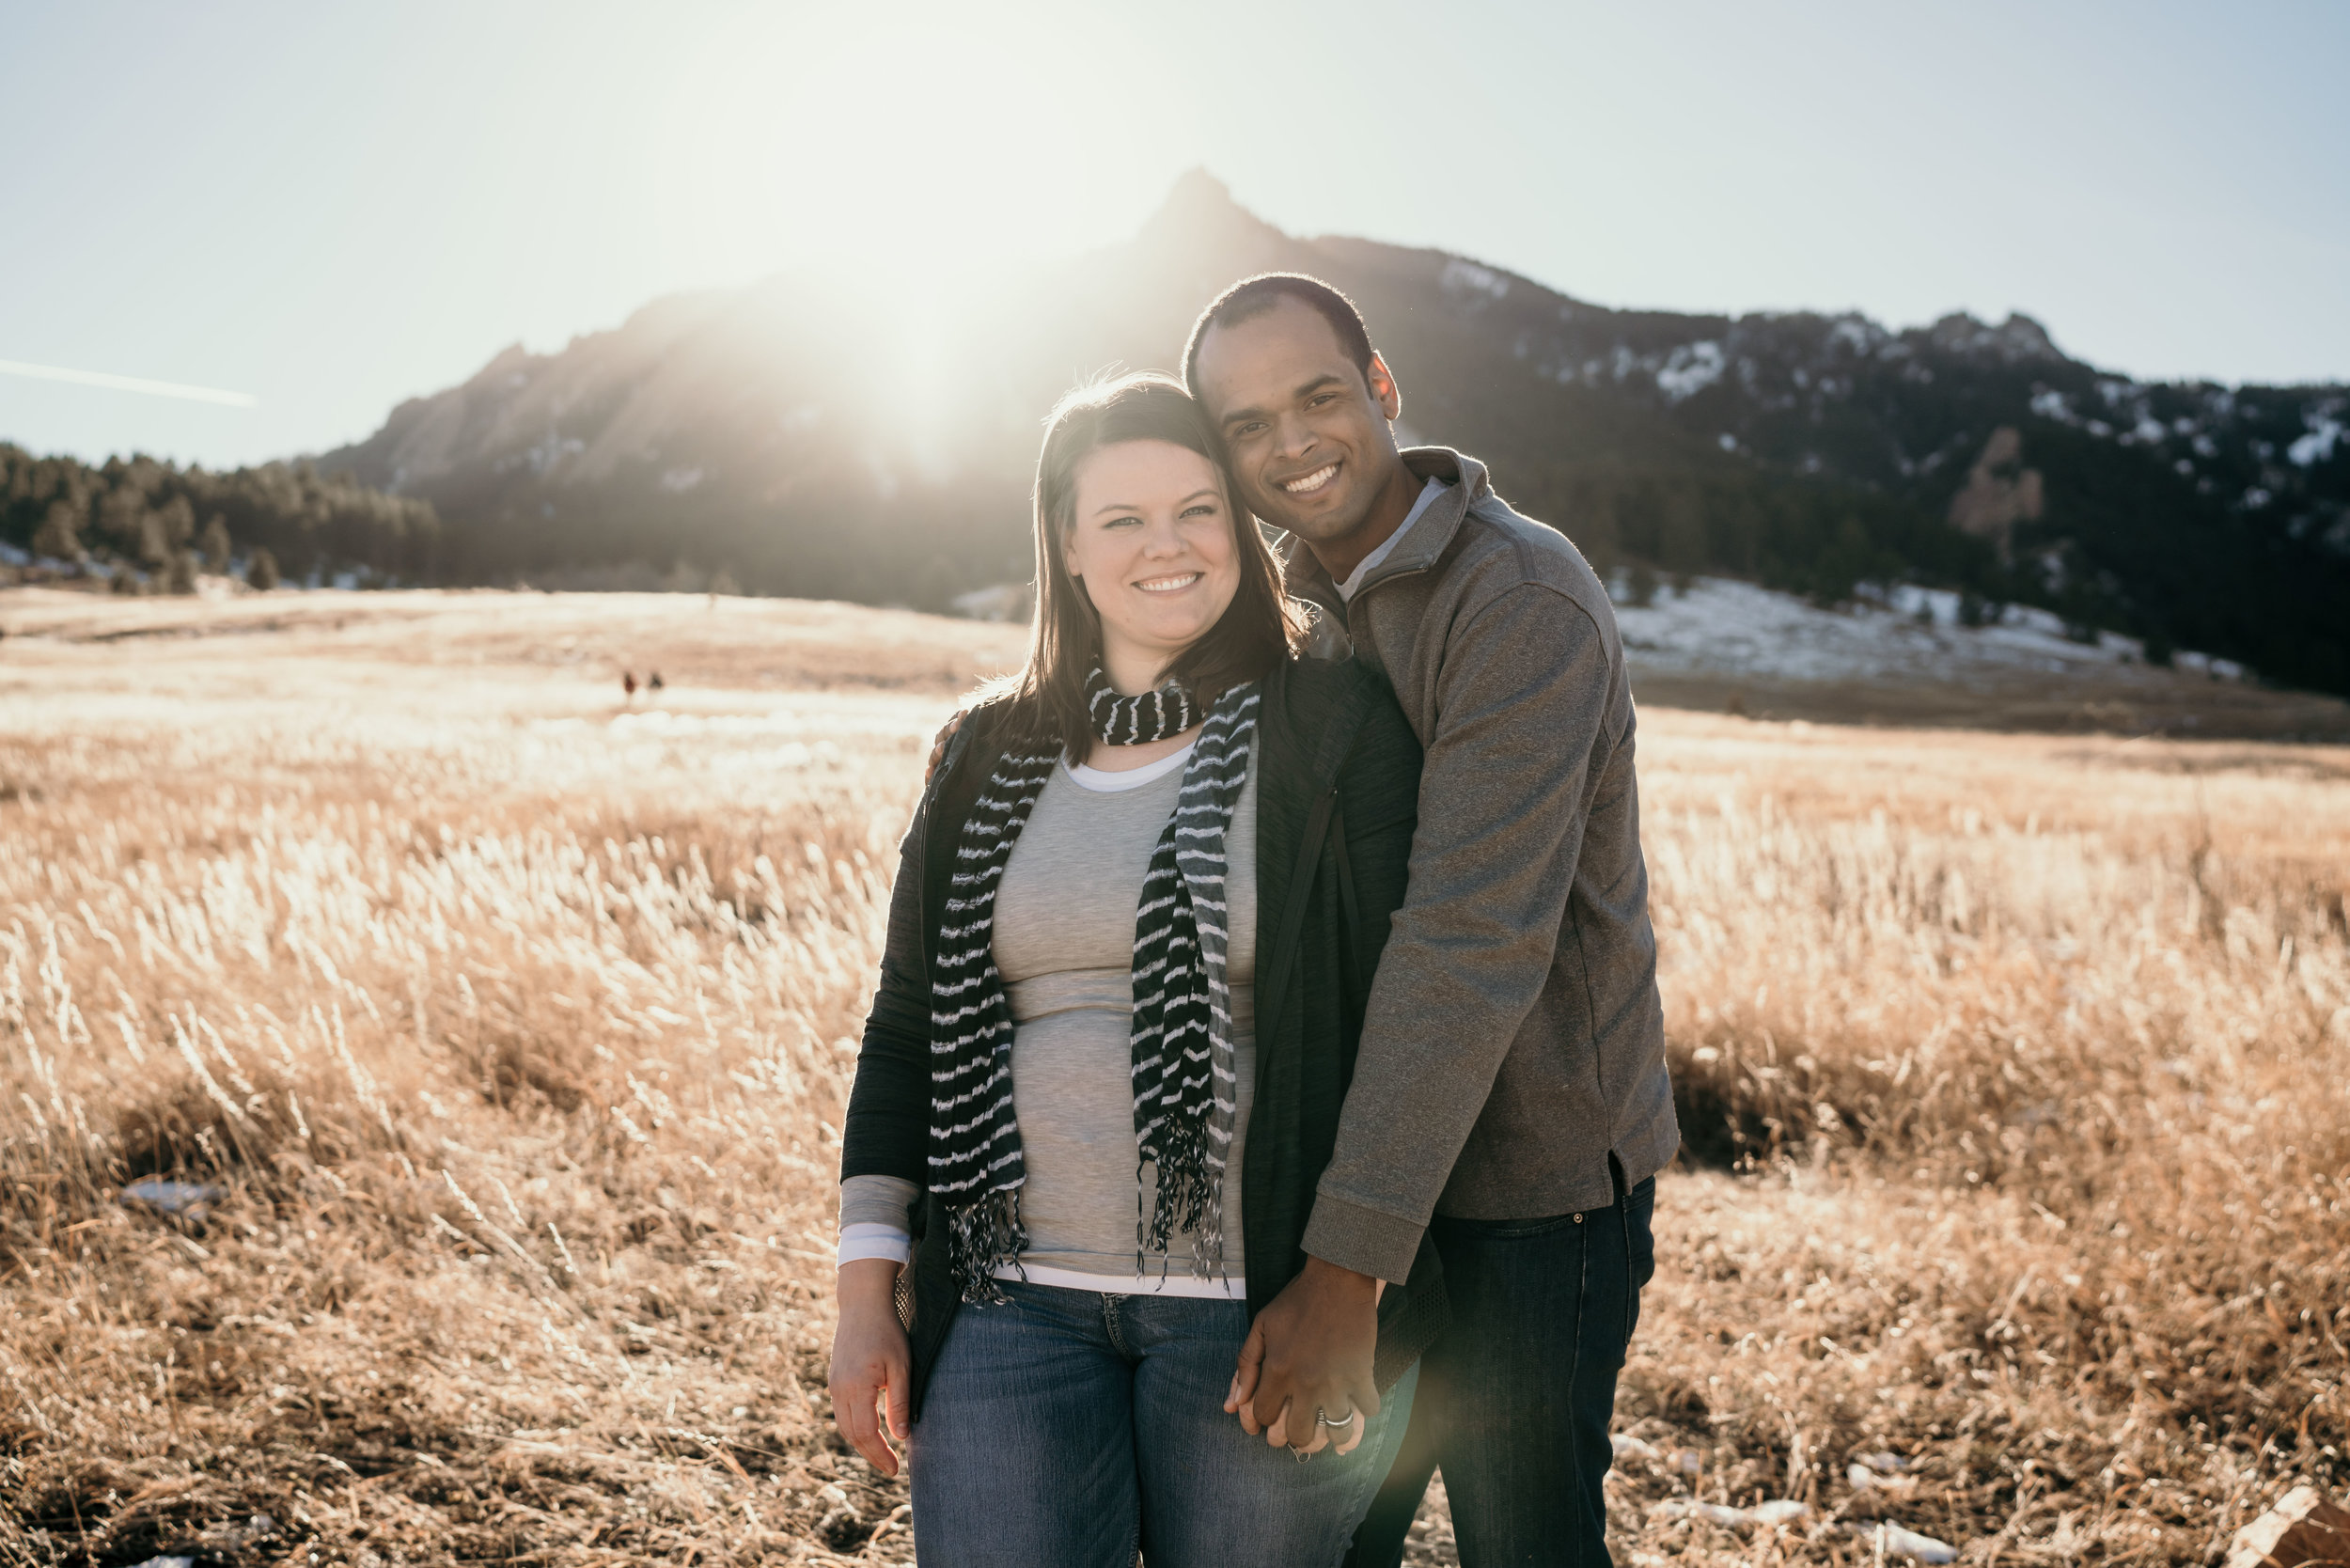 engagement photos at Chautauqua Park in Boulder together